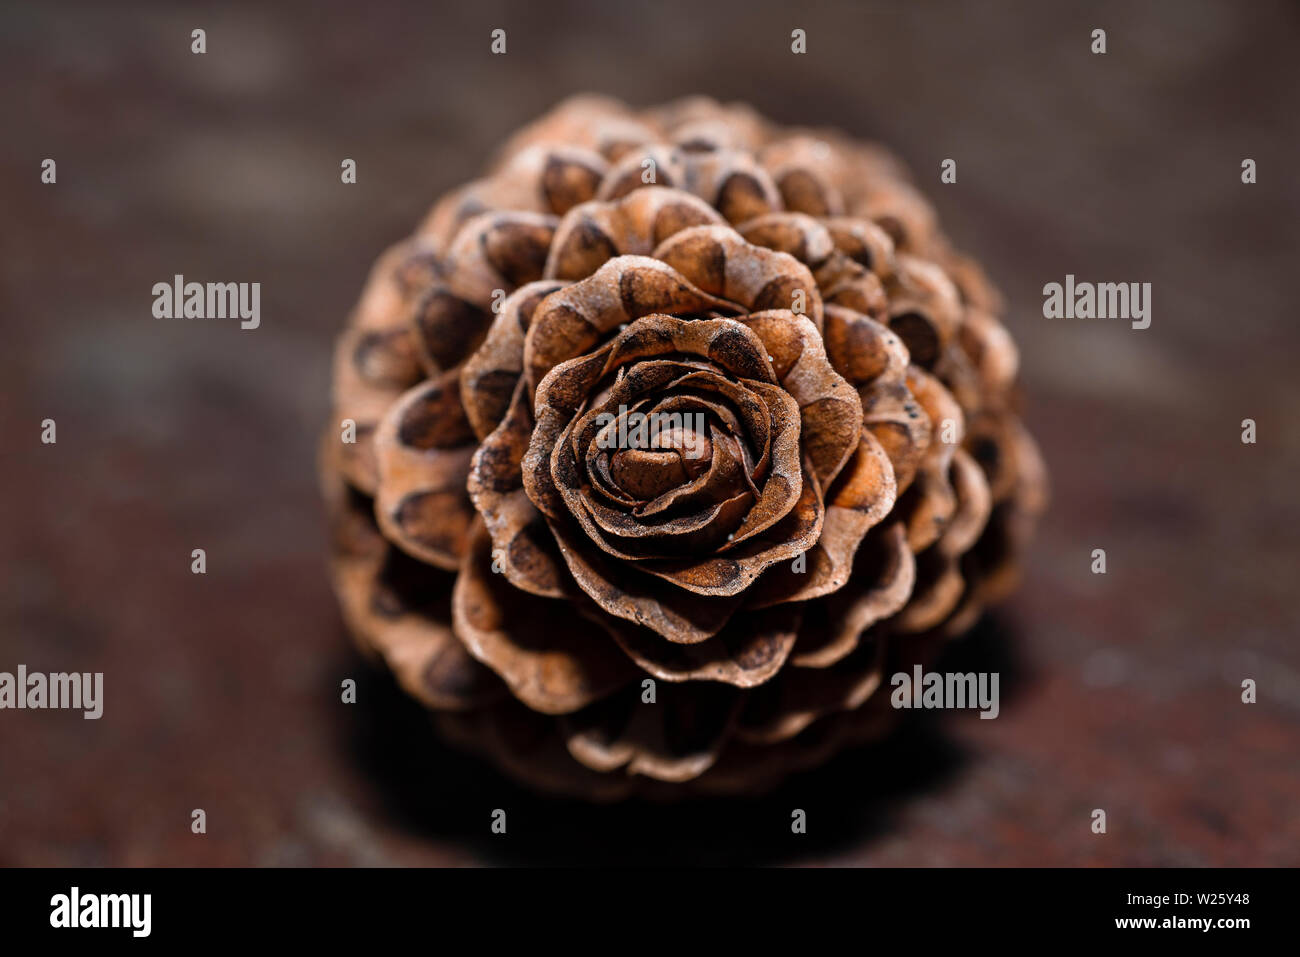 Fir cones in the form of roses.Cones. Cones in the form of roses. European larch. - Stock Image